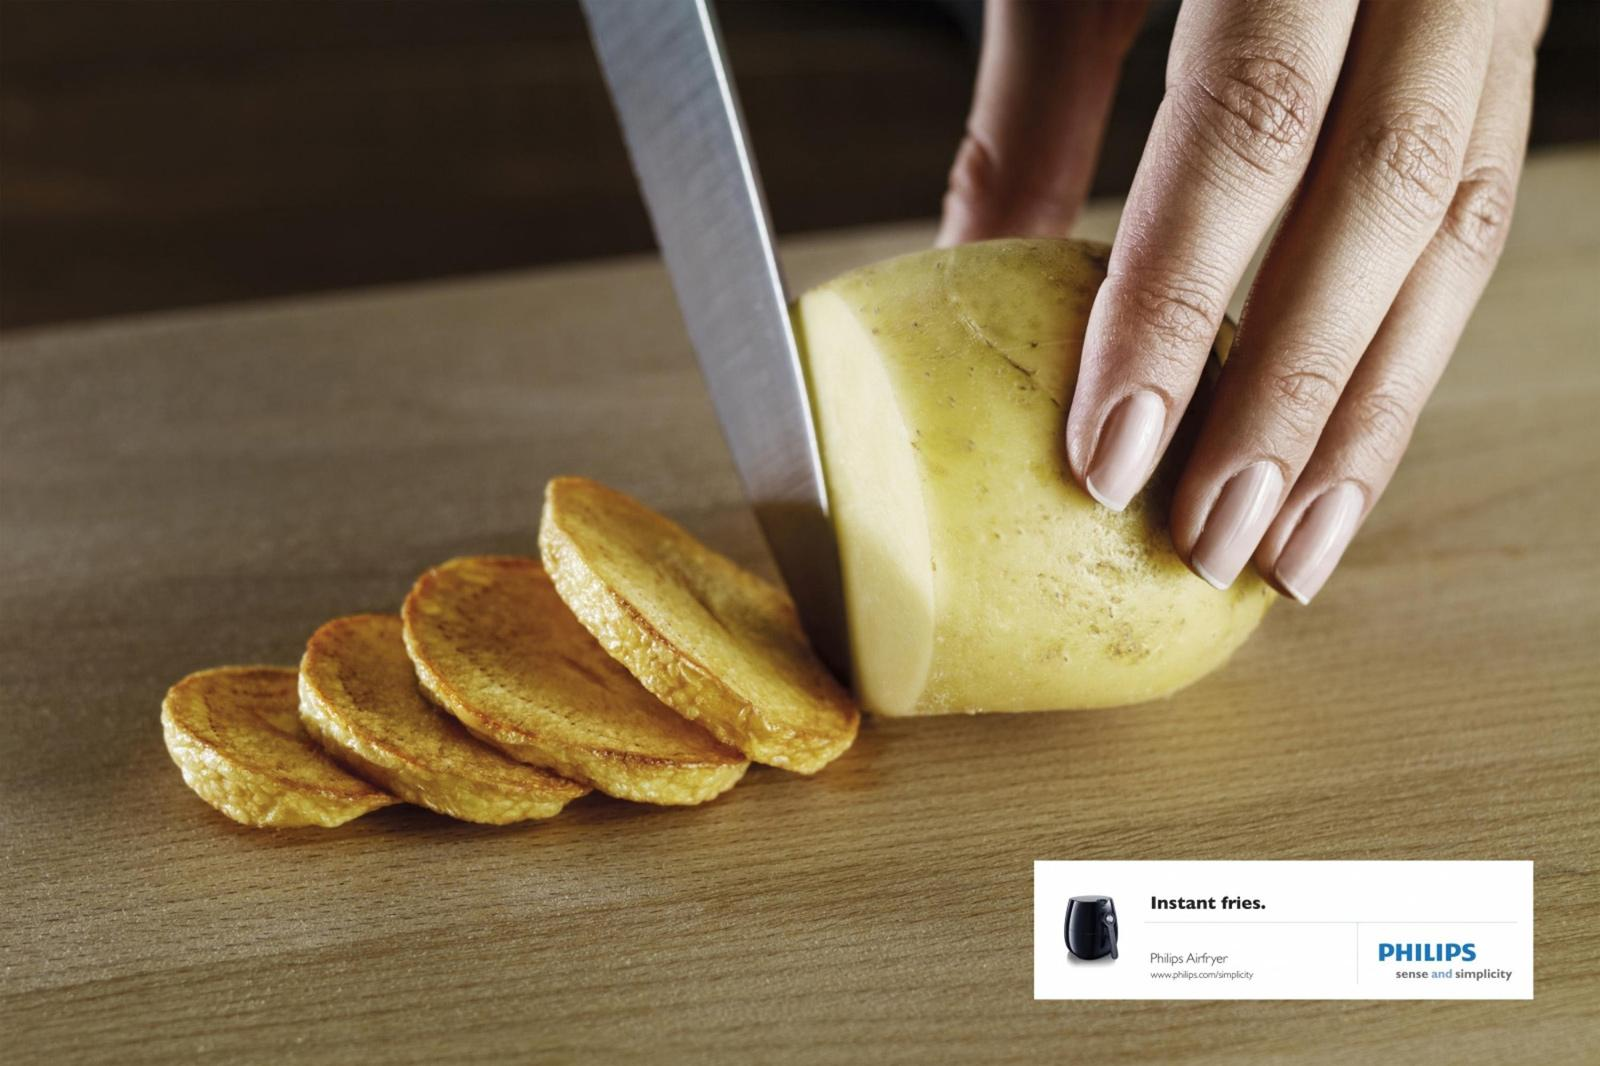 Philips Print Ad -  Potato